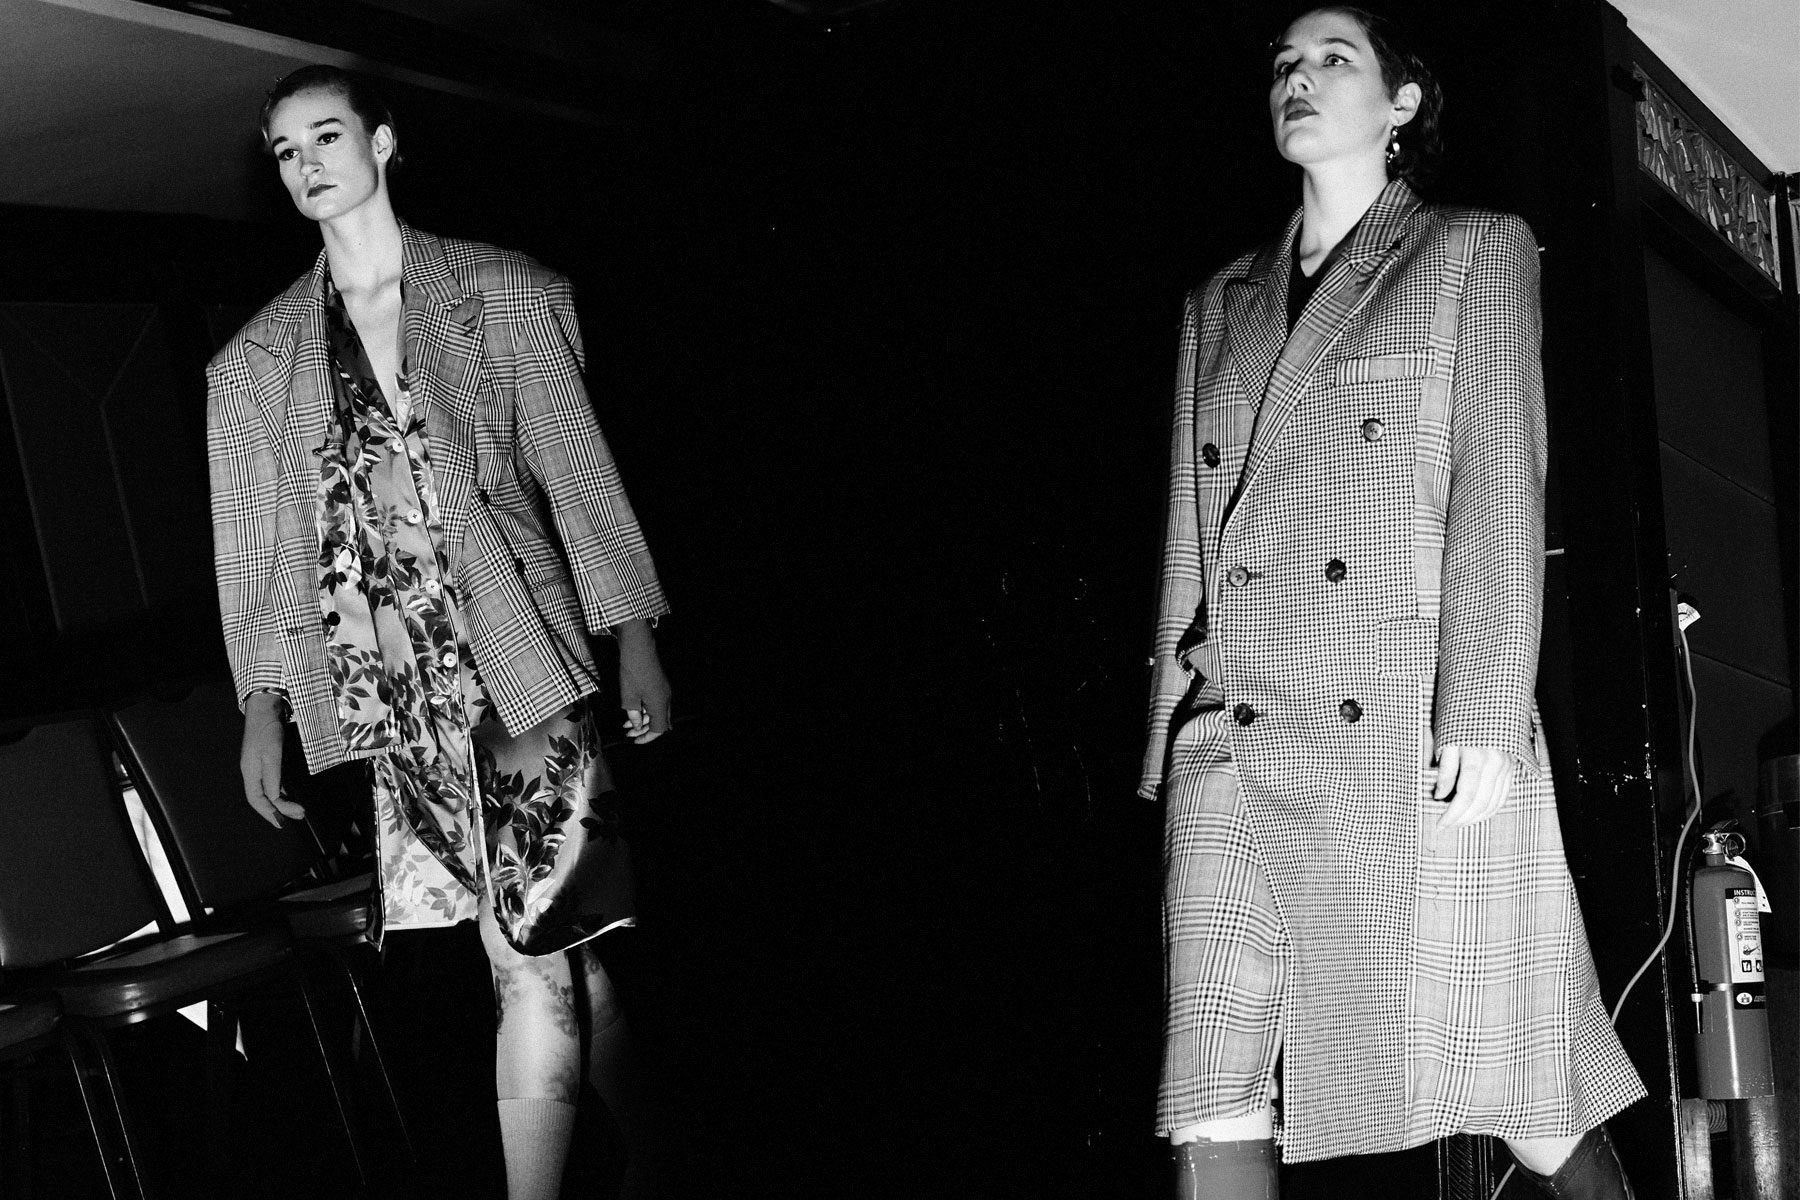 Models walk pre-show at Snow Xue Gao F/W18 collection during New York Fashion Week. Photographed by Alexander Thompson for Ponyboy magazine.